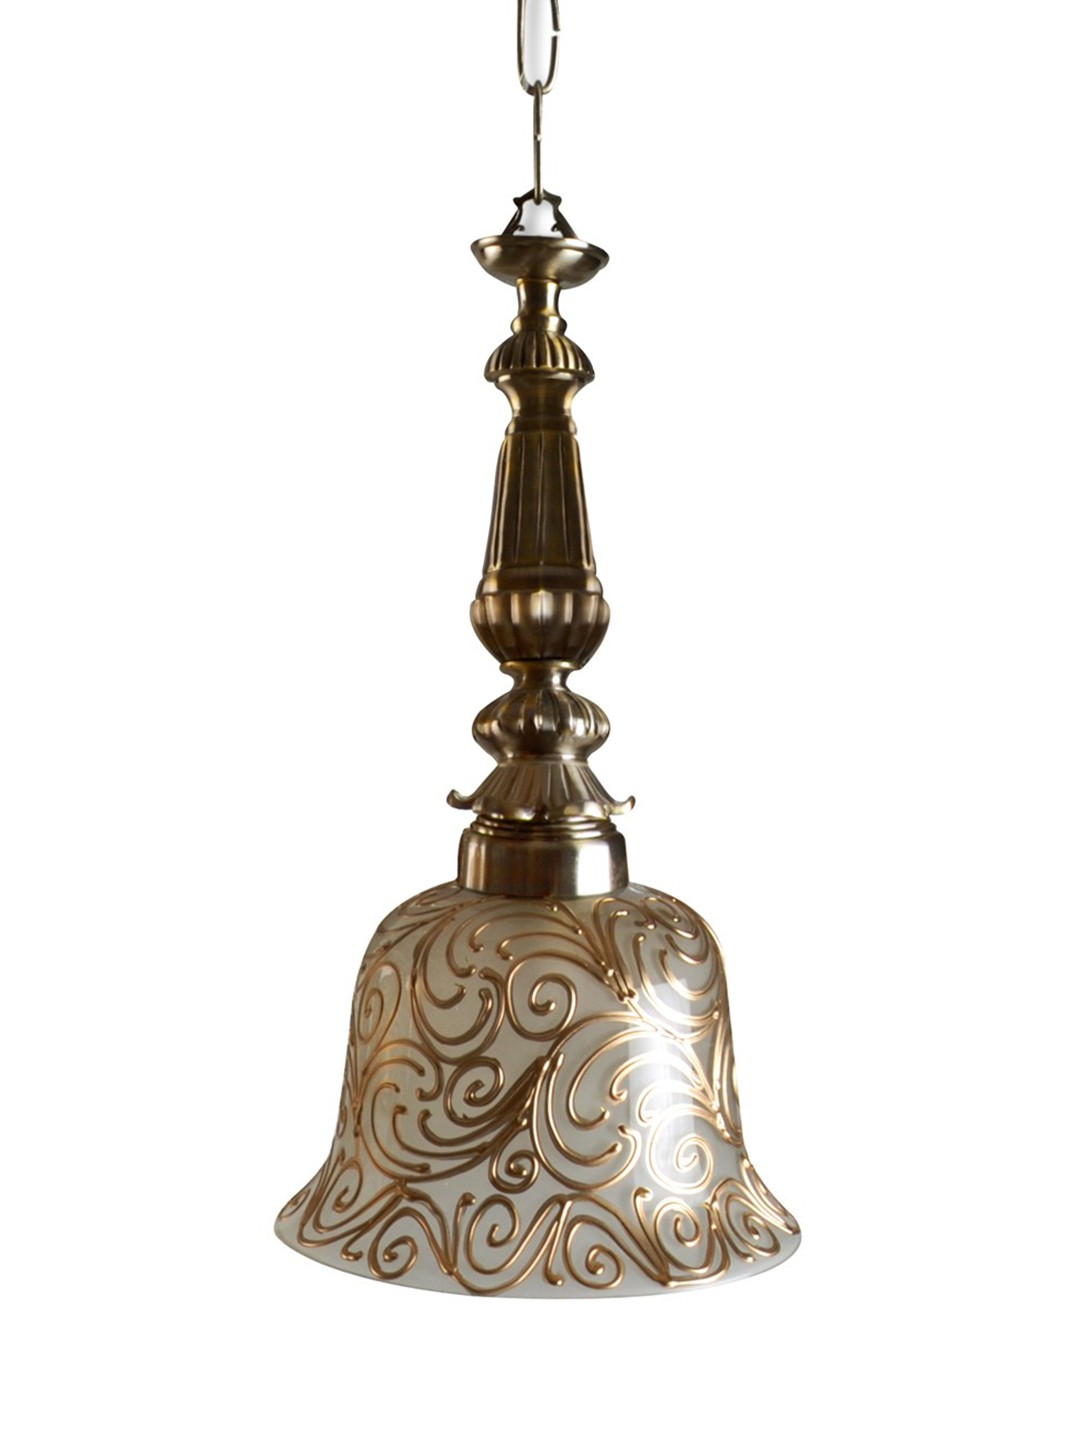 Badam Kapa Antique Brass Pendant Light